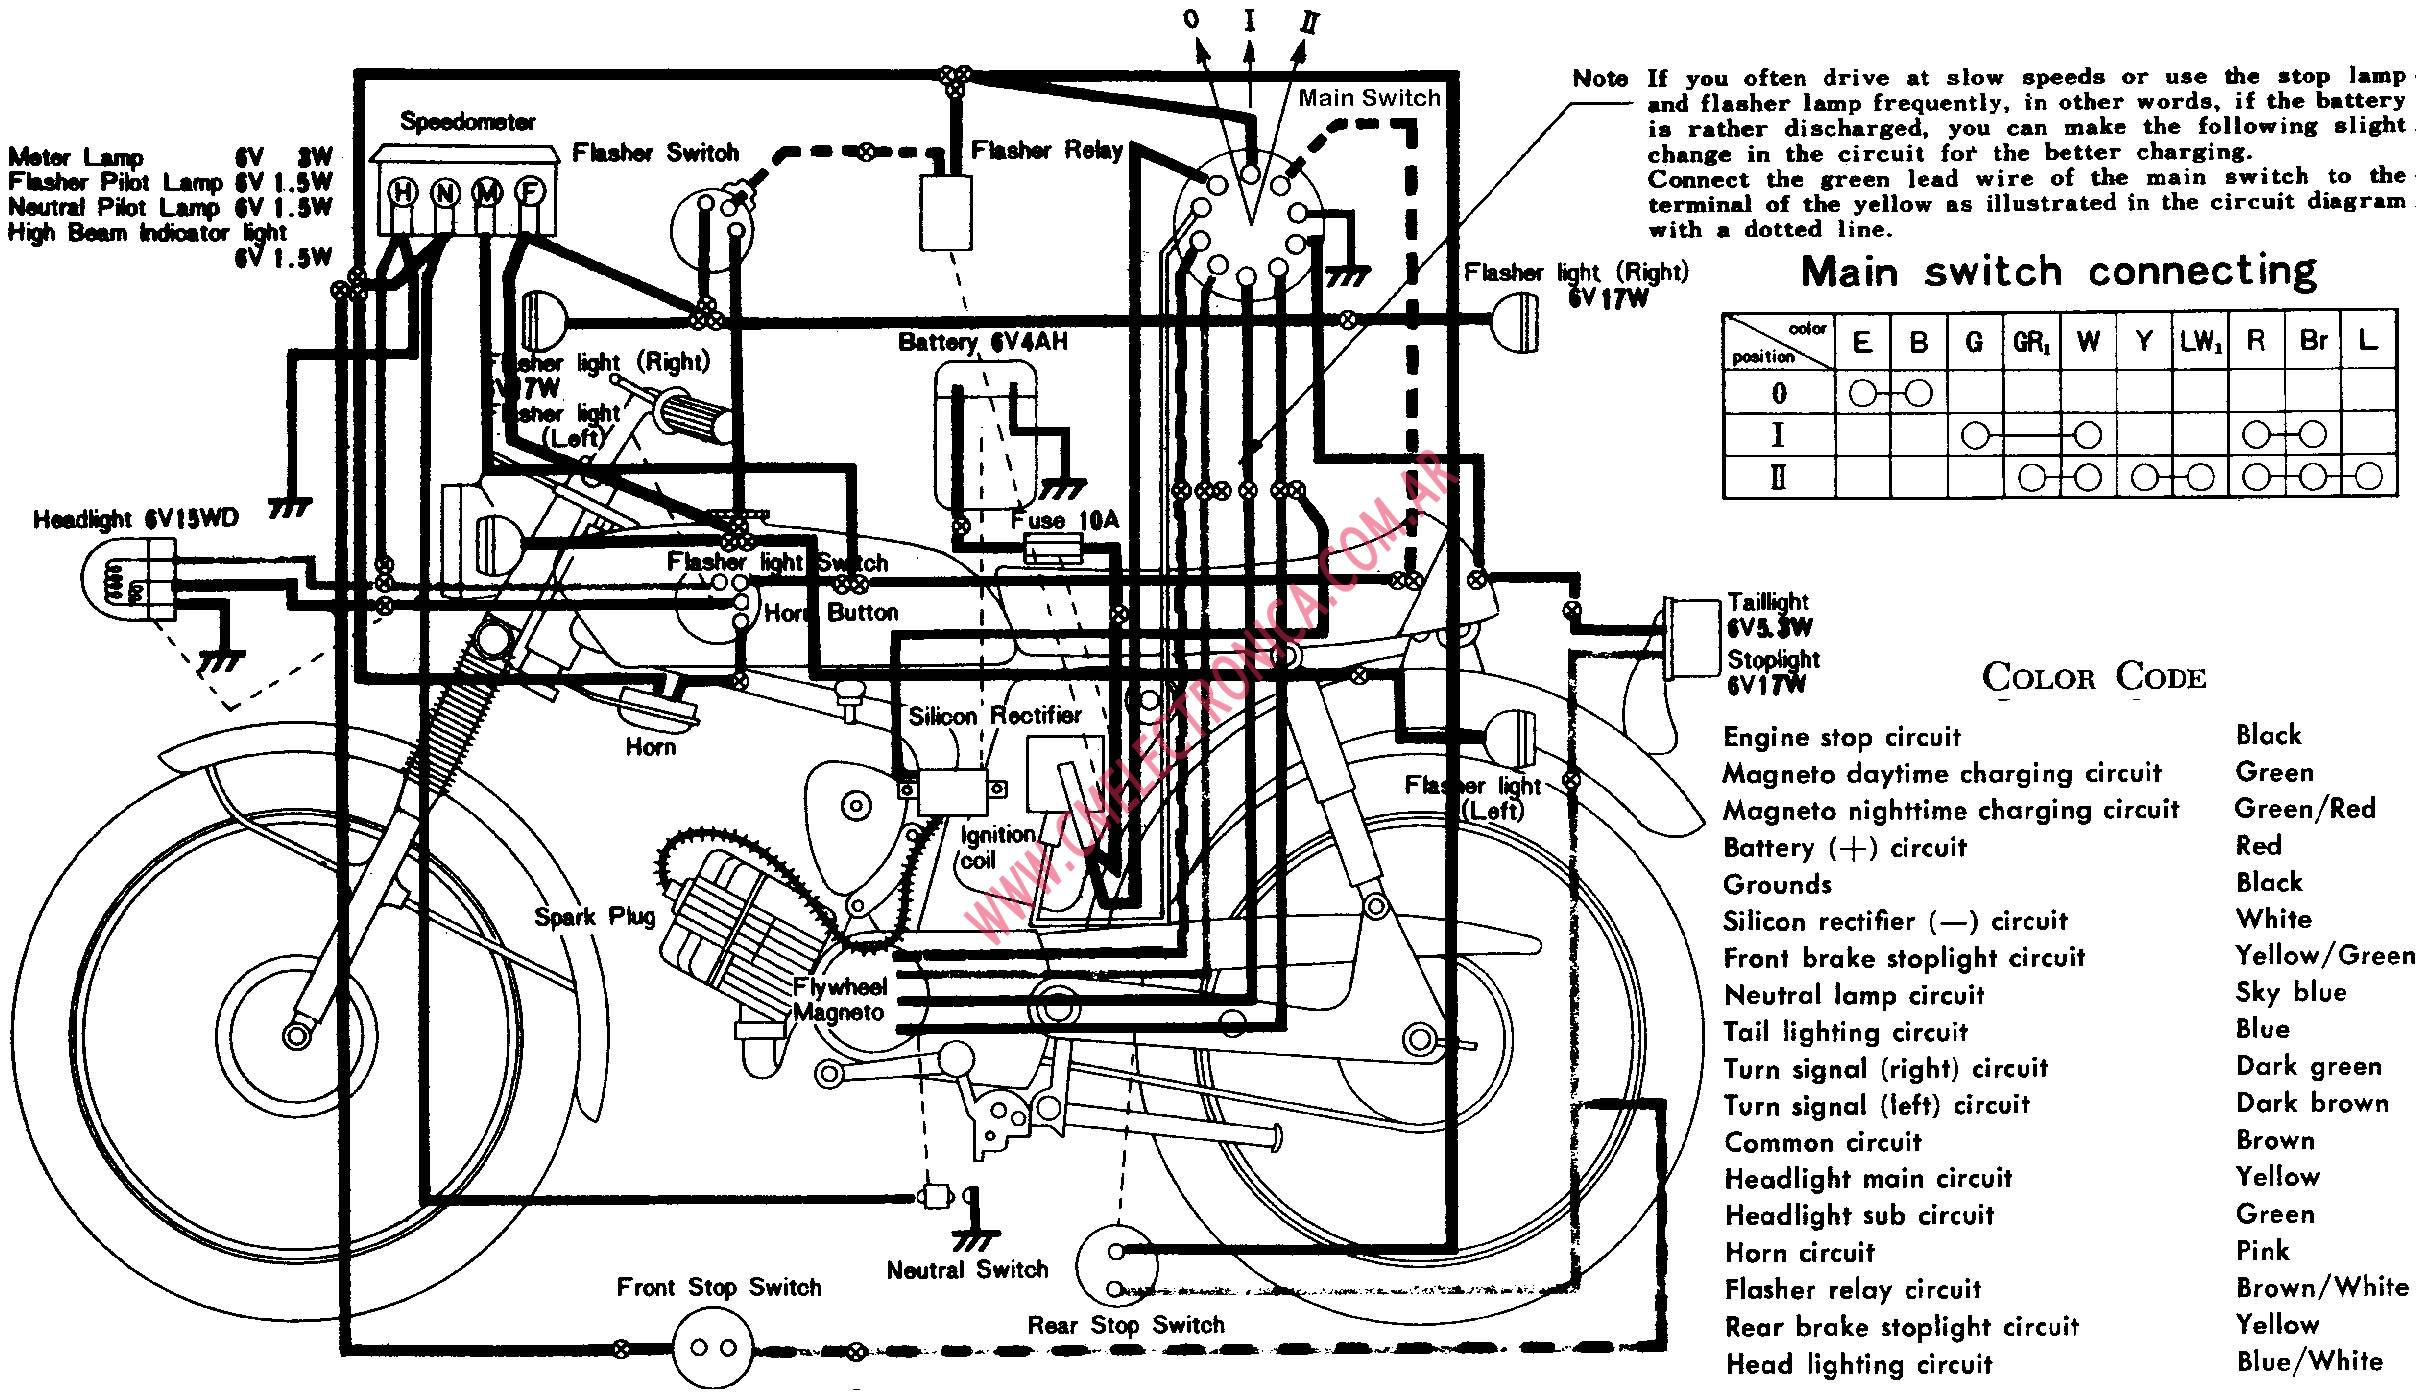 Yamaha Ct1 175 Wiring Diagram Yl2 Wire Schematic G8 Golf Cart Electric Image For Electrical Readingrat Net Yamahas 2